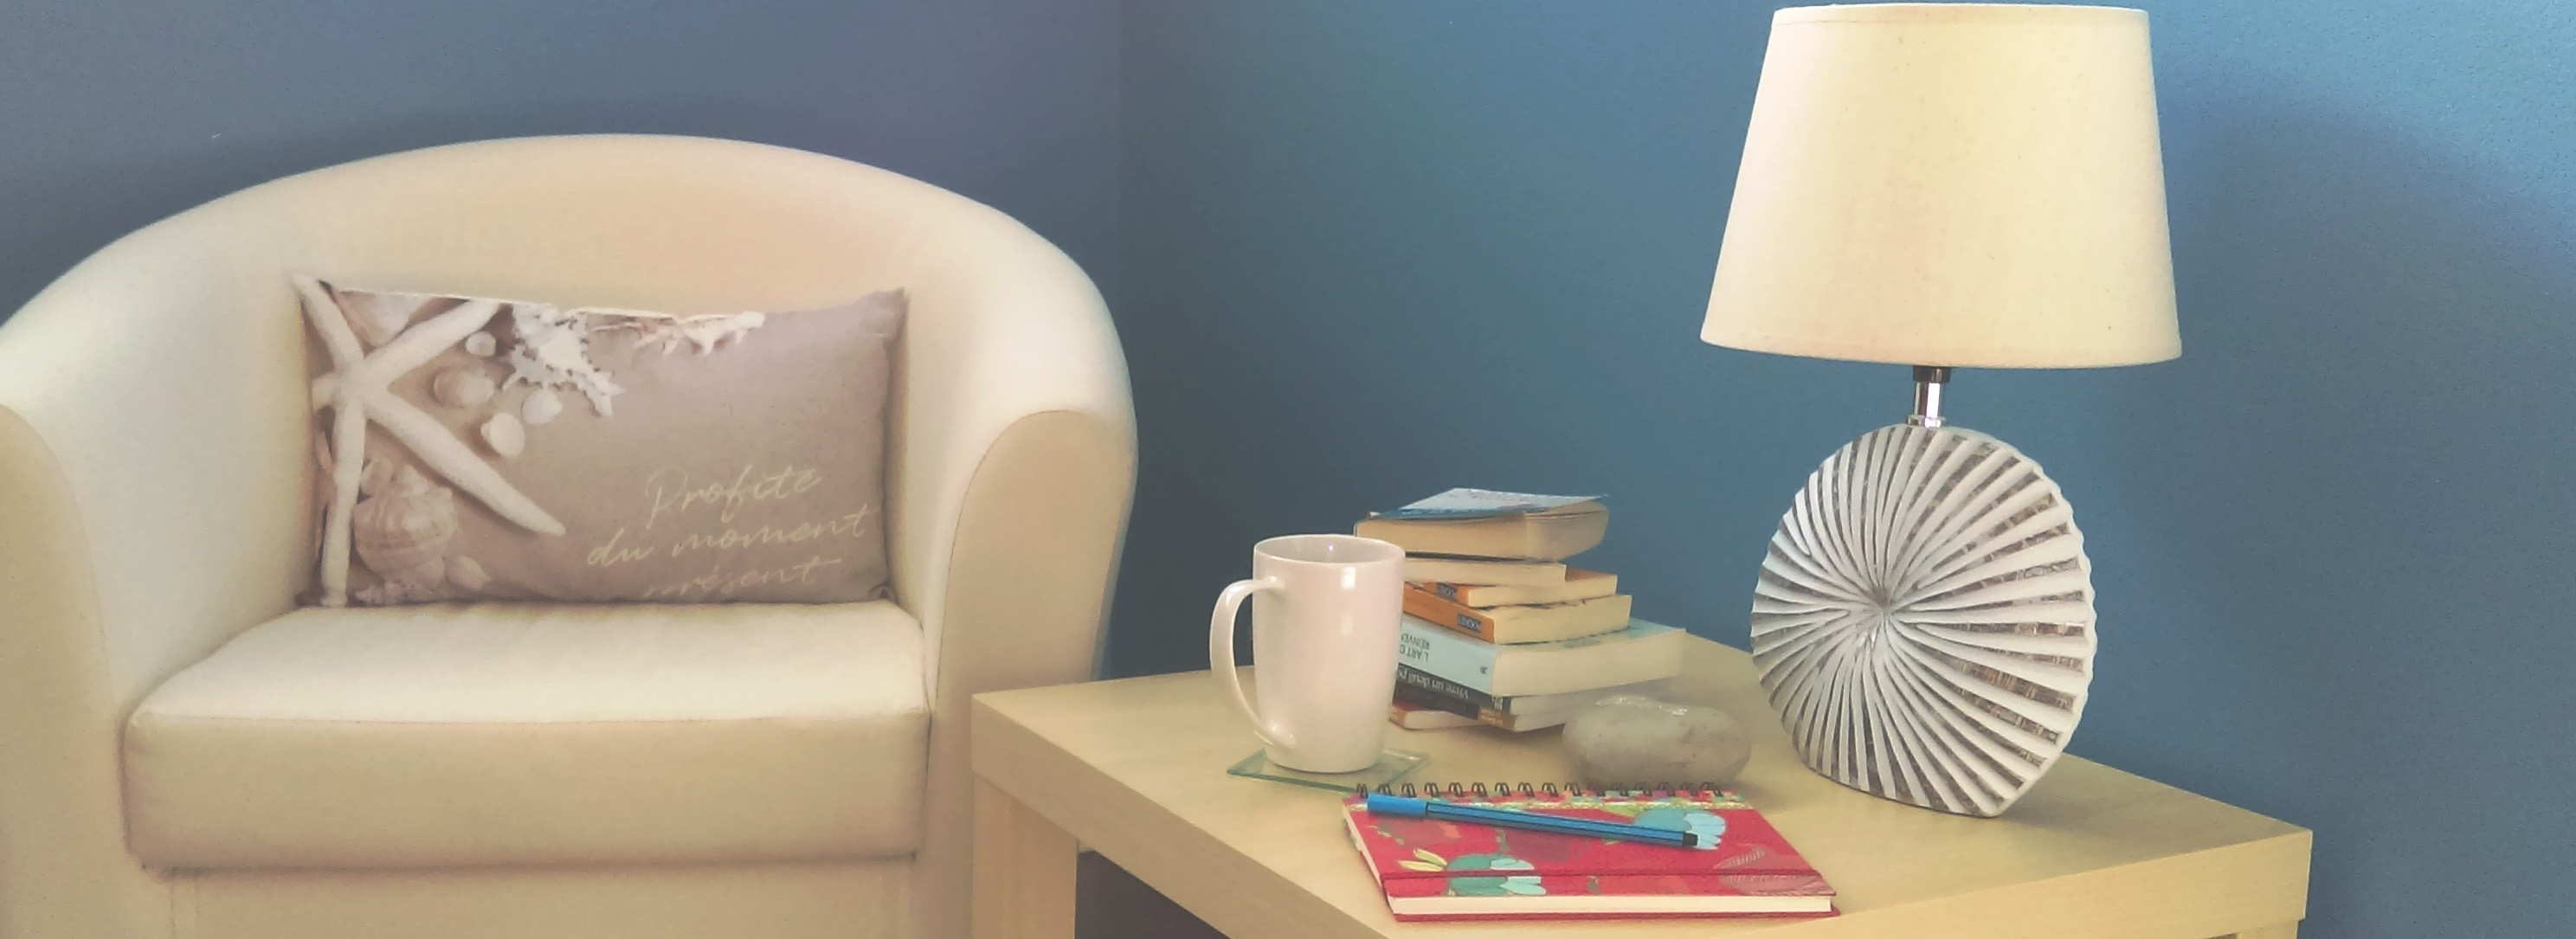 Table basse + livres